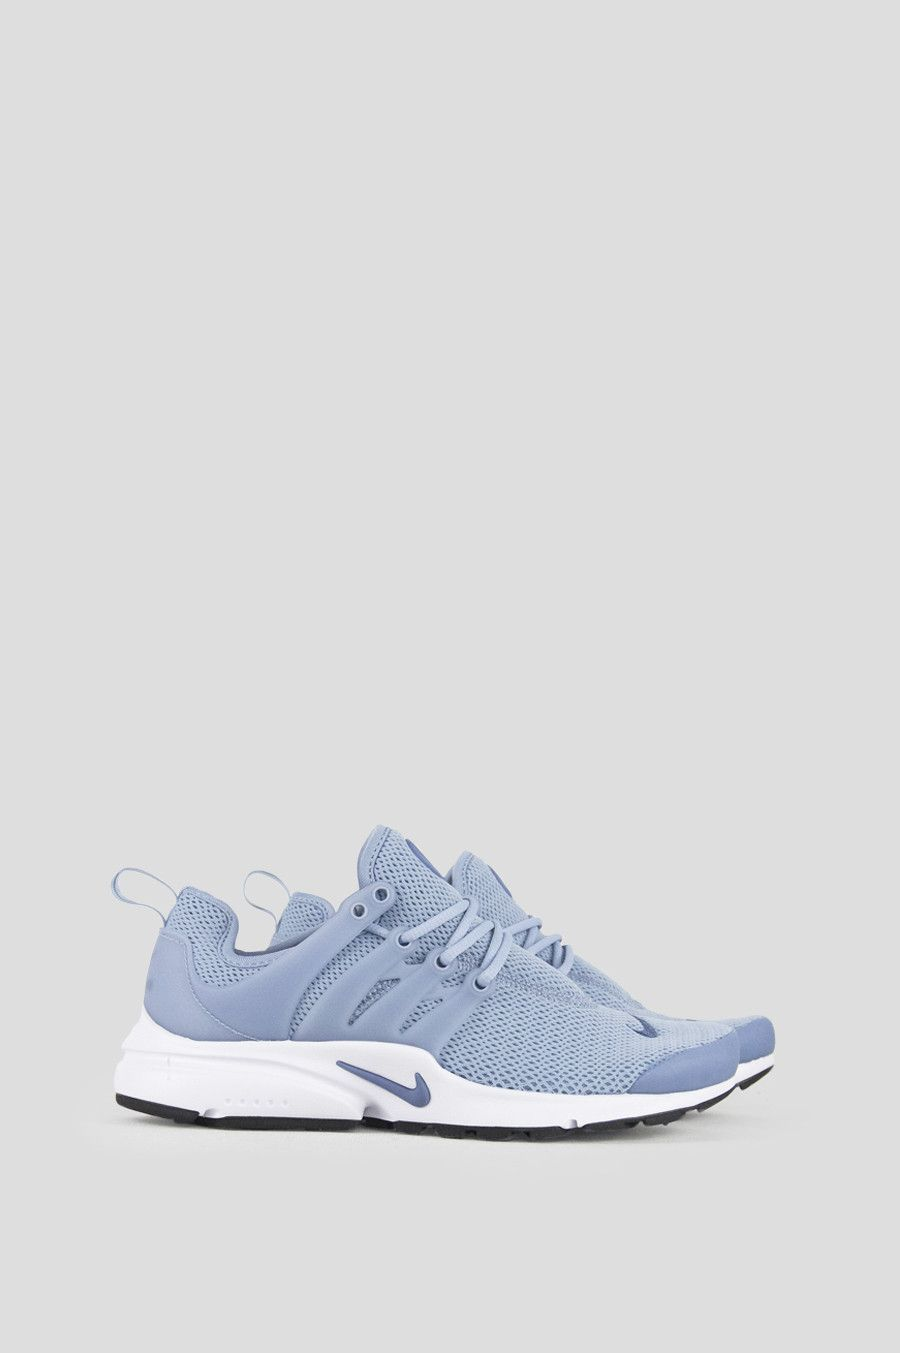 best sneakers 3ba8c e43c1 The Nike Air Presto Women's Shoe is inspired by the comfort ...